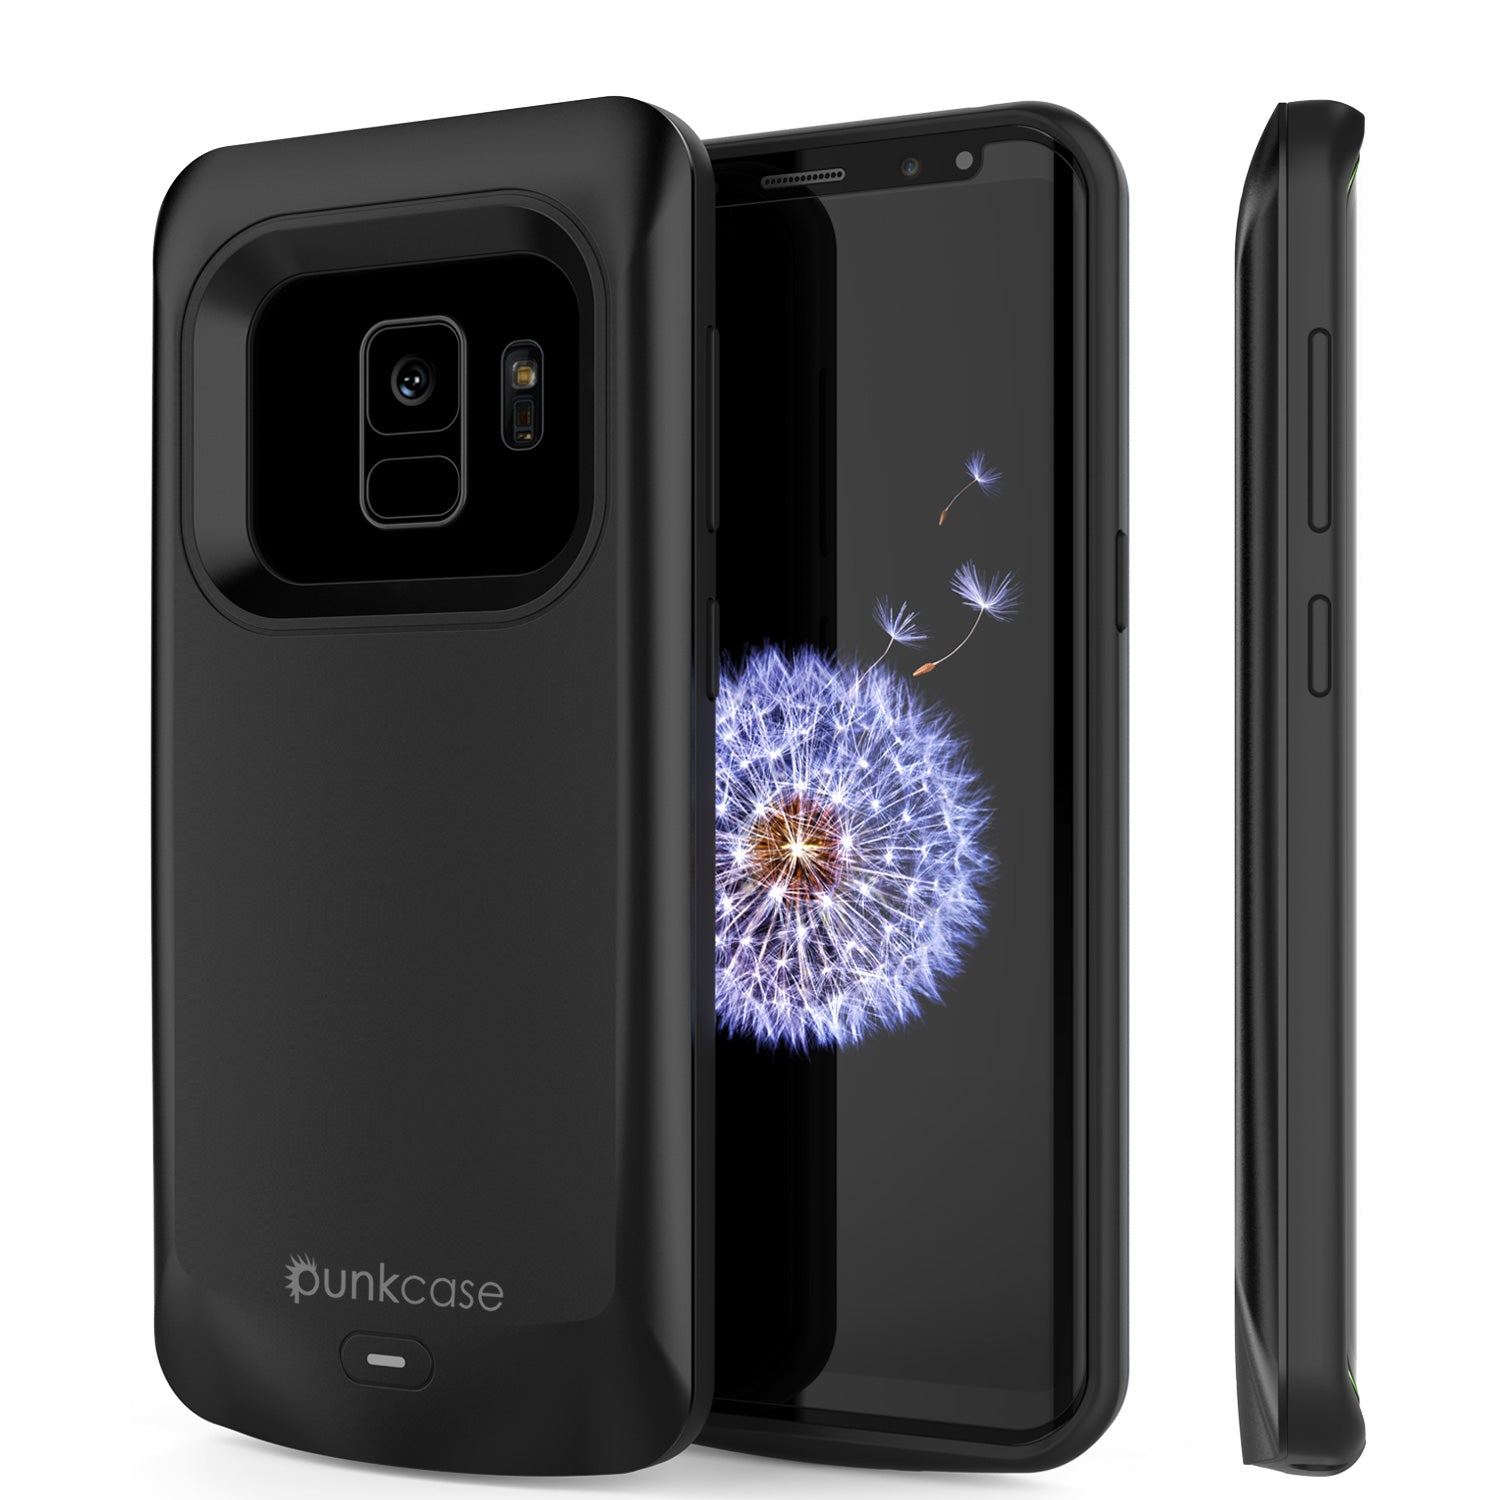 buy popular e4b5e 1047f Galaxy S9 Battery Case, PunkJuice 5000mAH Fast Charging Power Bank Case  [Black]